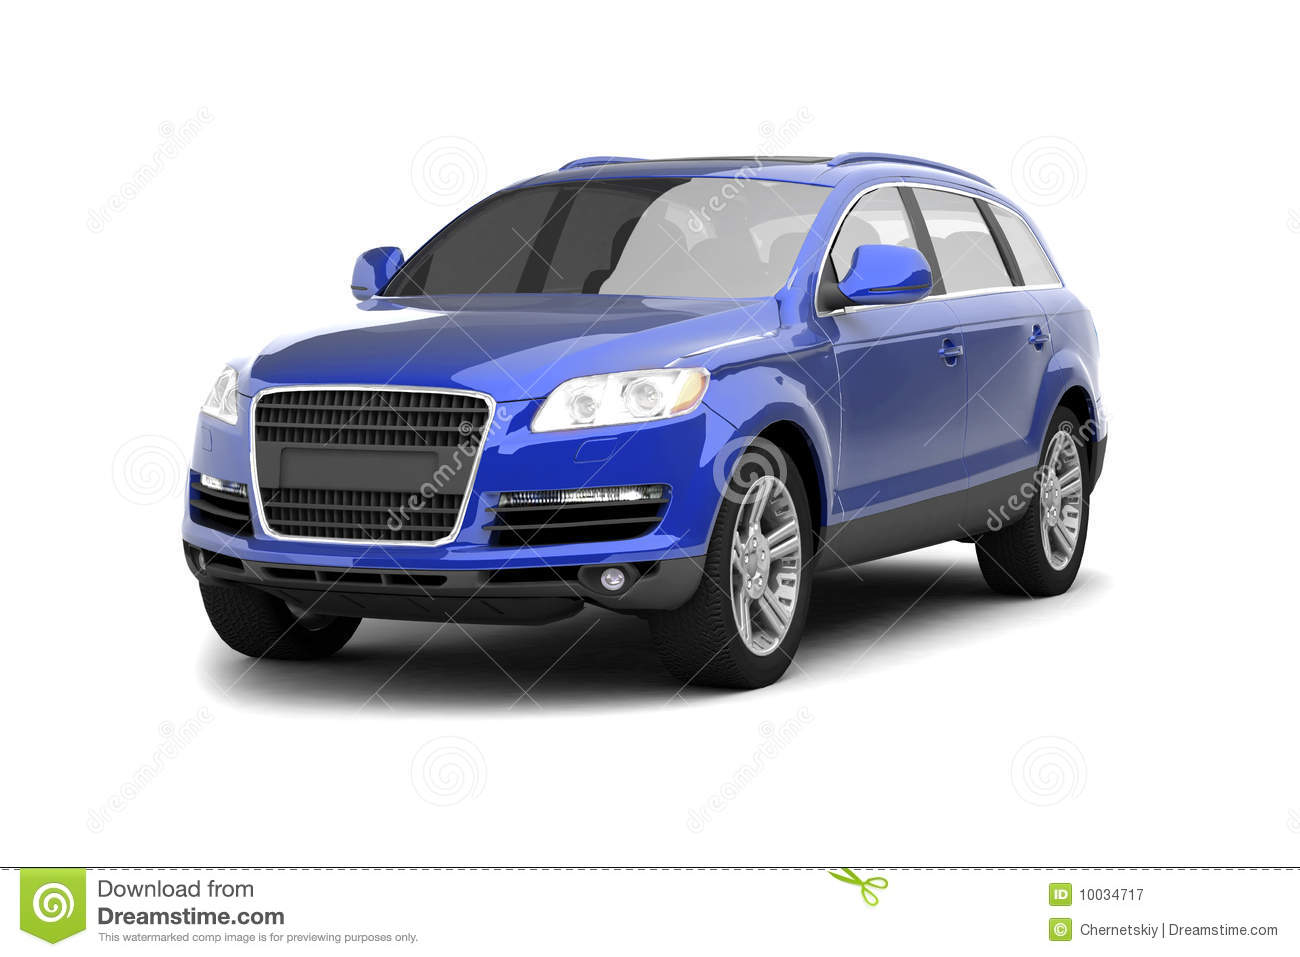 Luxury Blue Crossover SUV Royalty Free Stock Photography - Image: 10034717